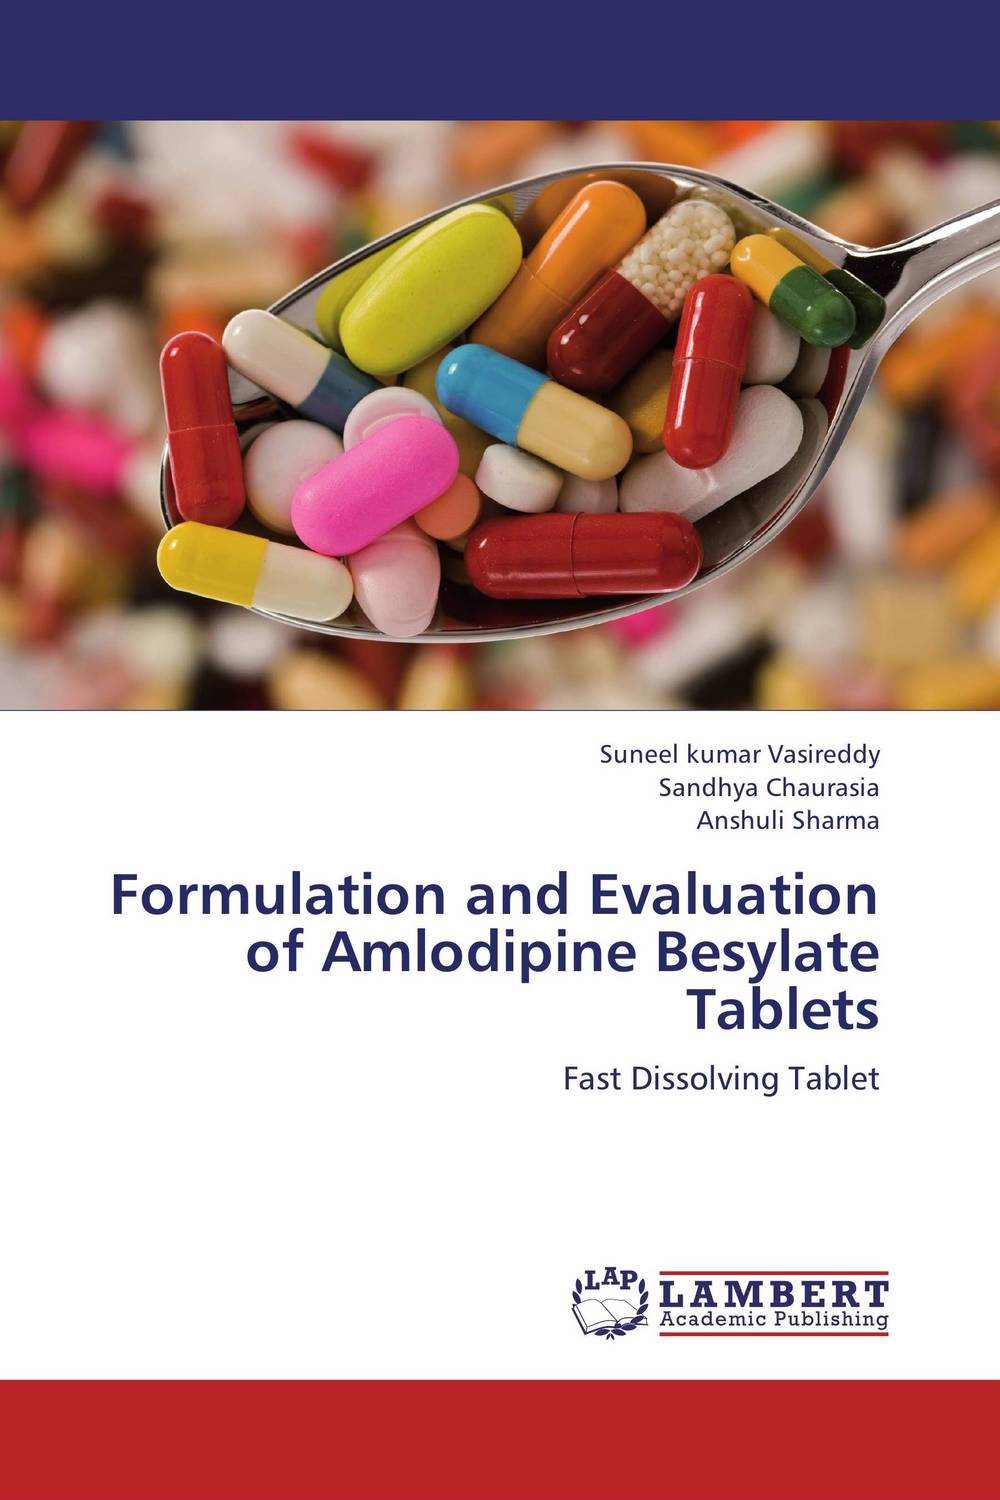 Formulation and Evaluation of Amlodipine Besylate Tablets amita yadav kamal singh rathore and geeta m patel formulation evaluation and optimization of mouth dissolving tablets